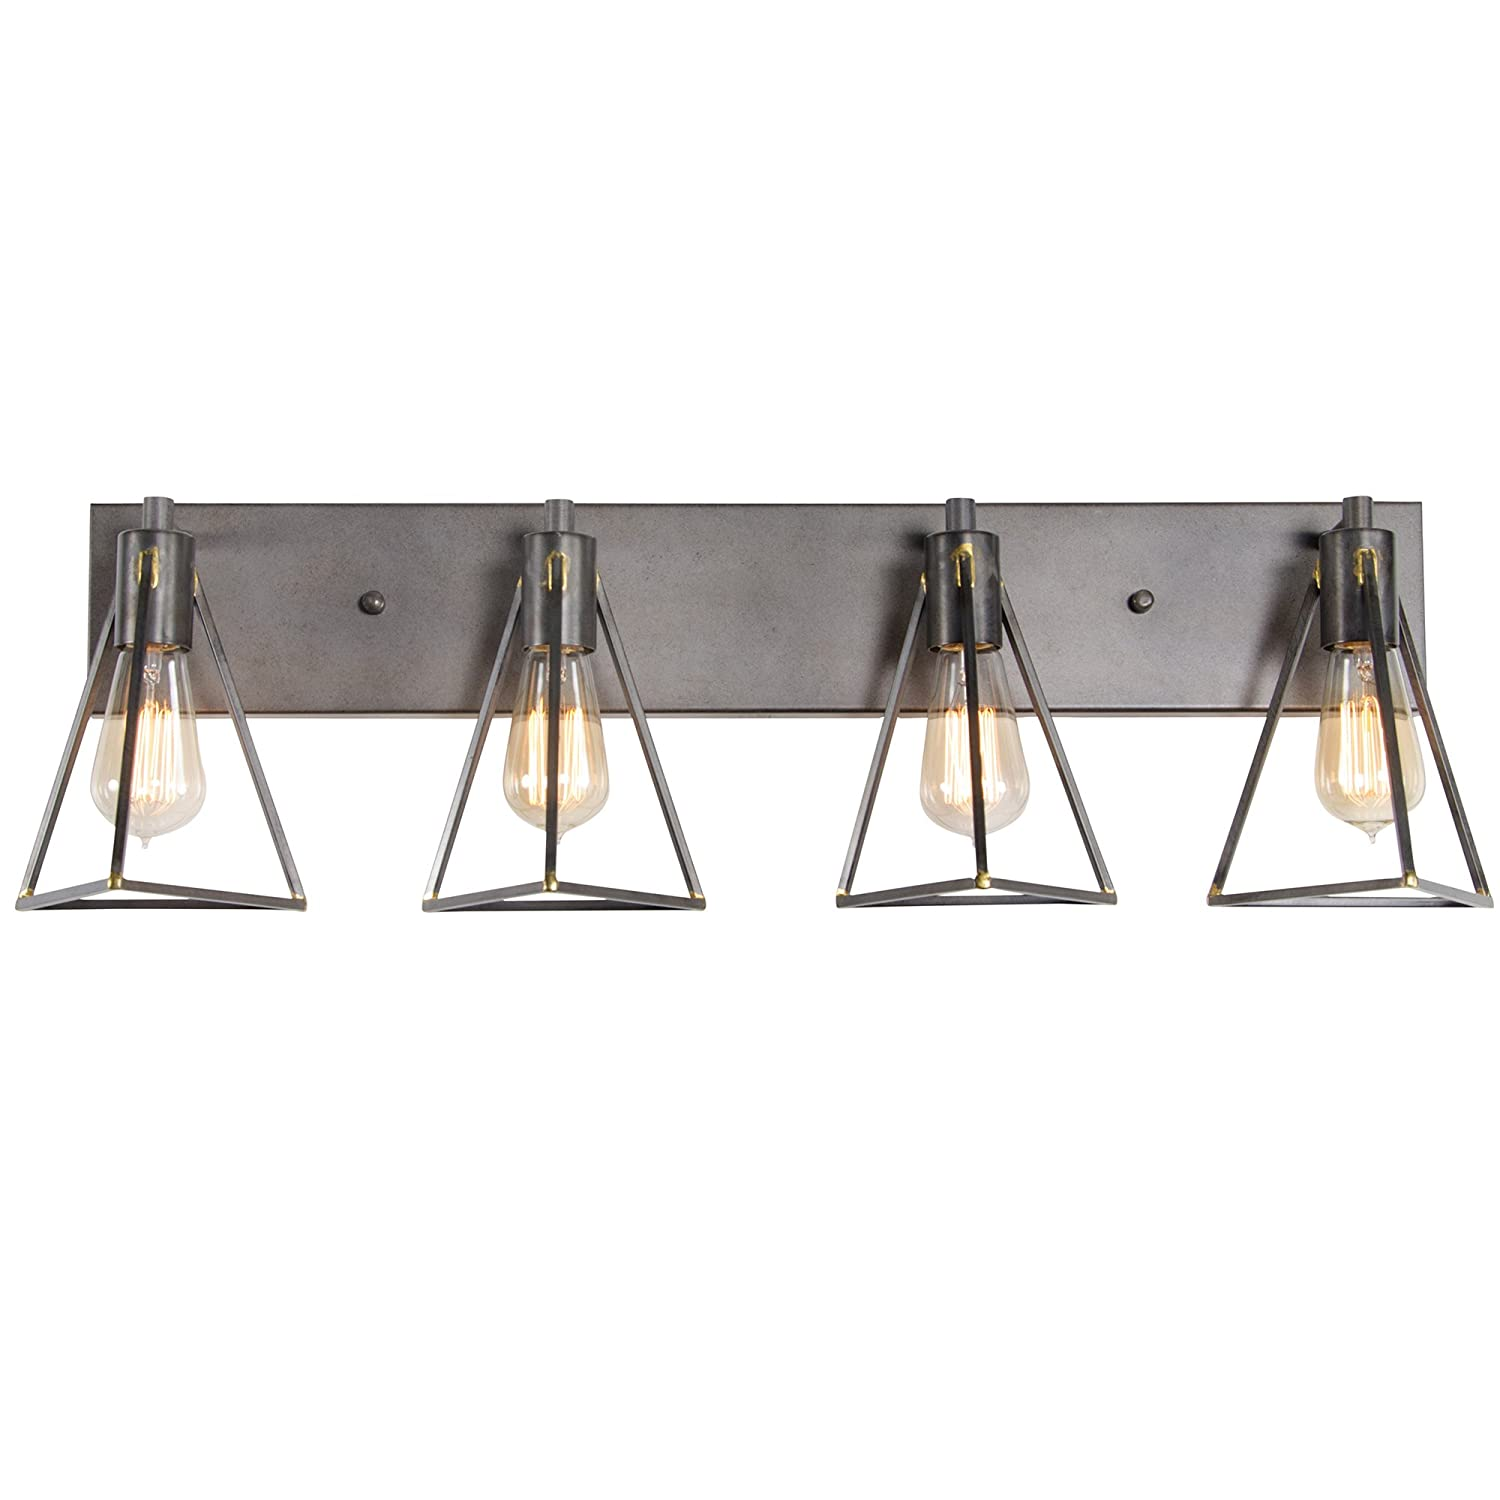 Varaluz 288B04GS Trini 4-Light Bath Fixture – Gunsmoke Finish